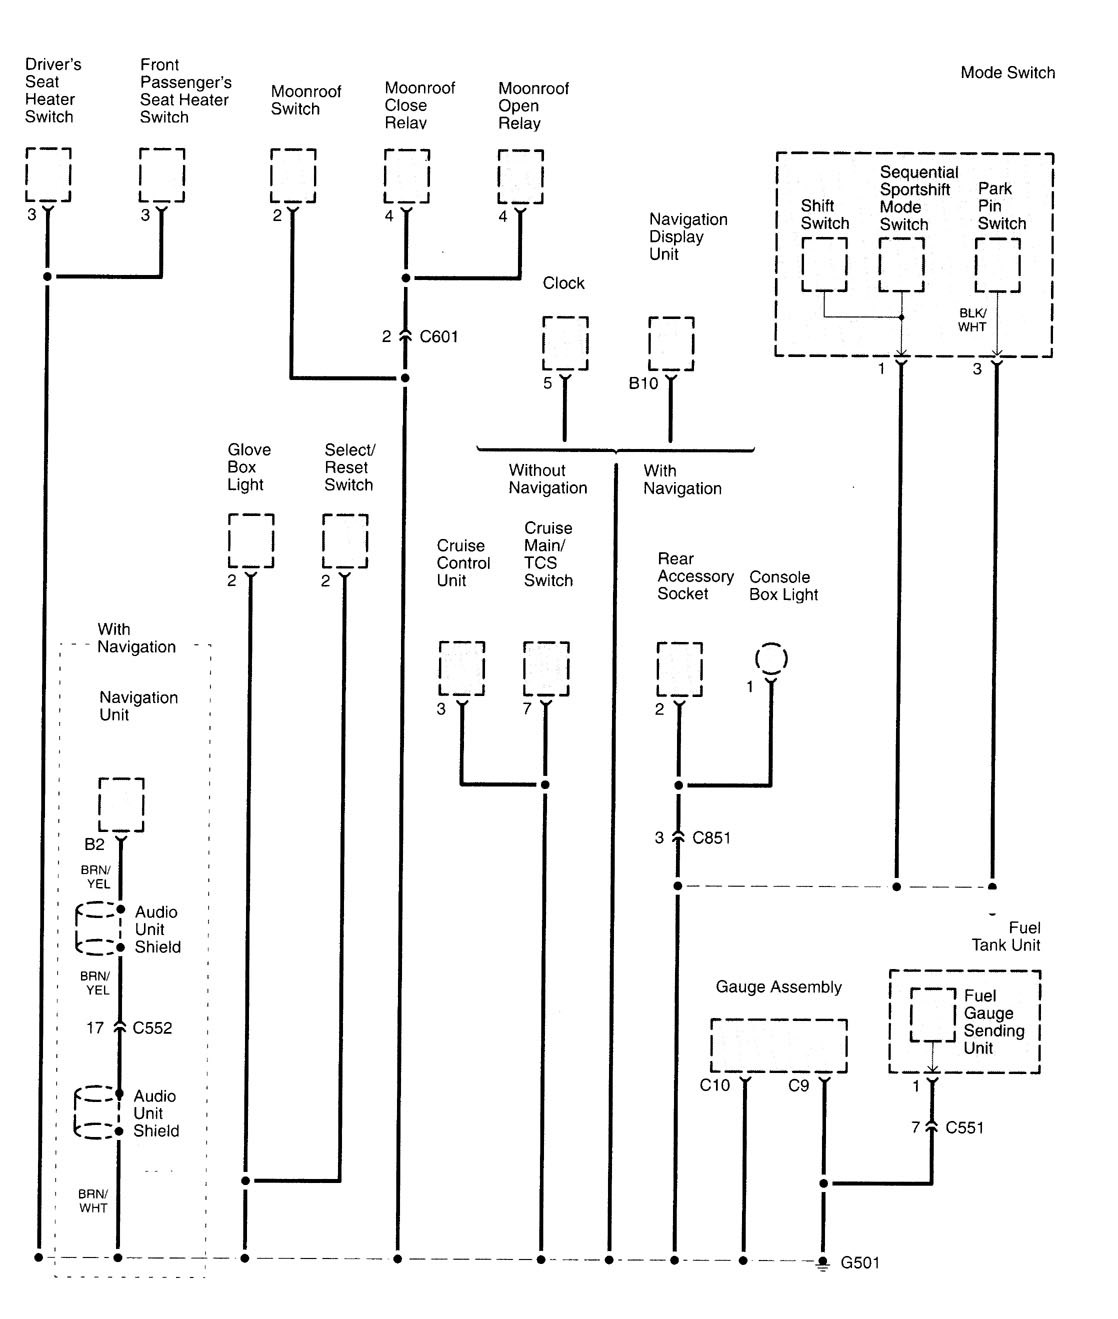 ... Acura TL – wiring diagram – fuse panel (part 7) ...